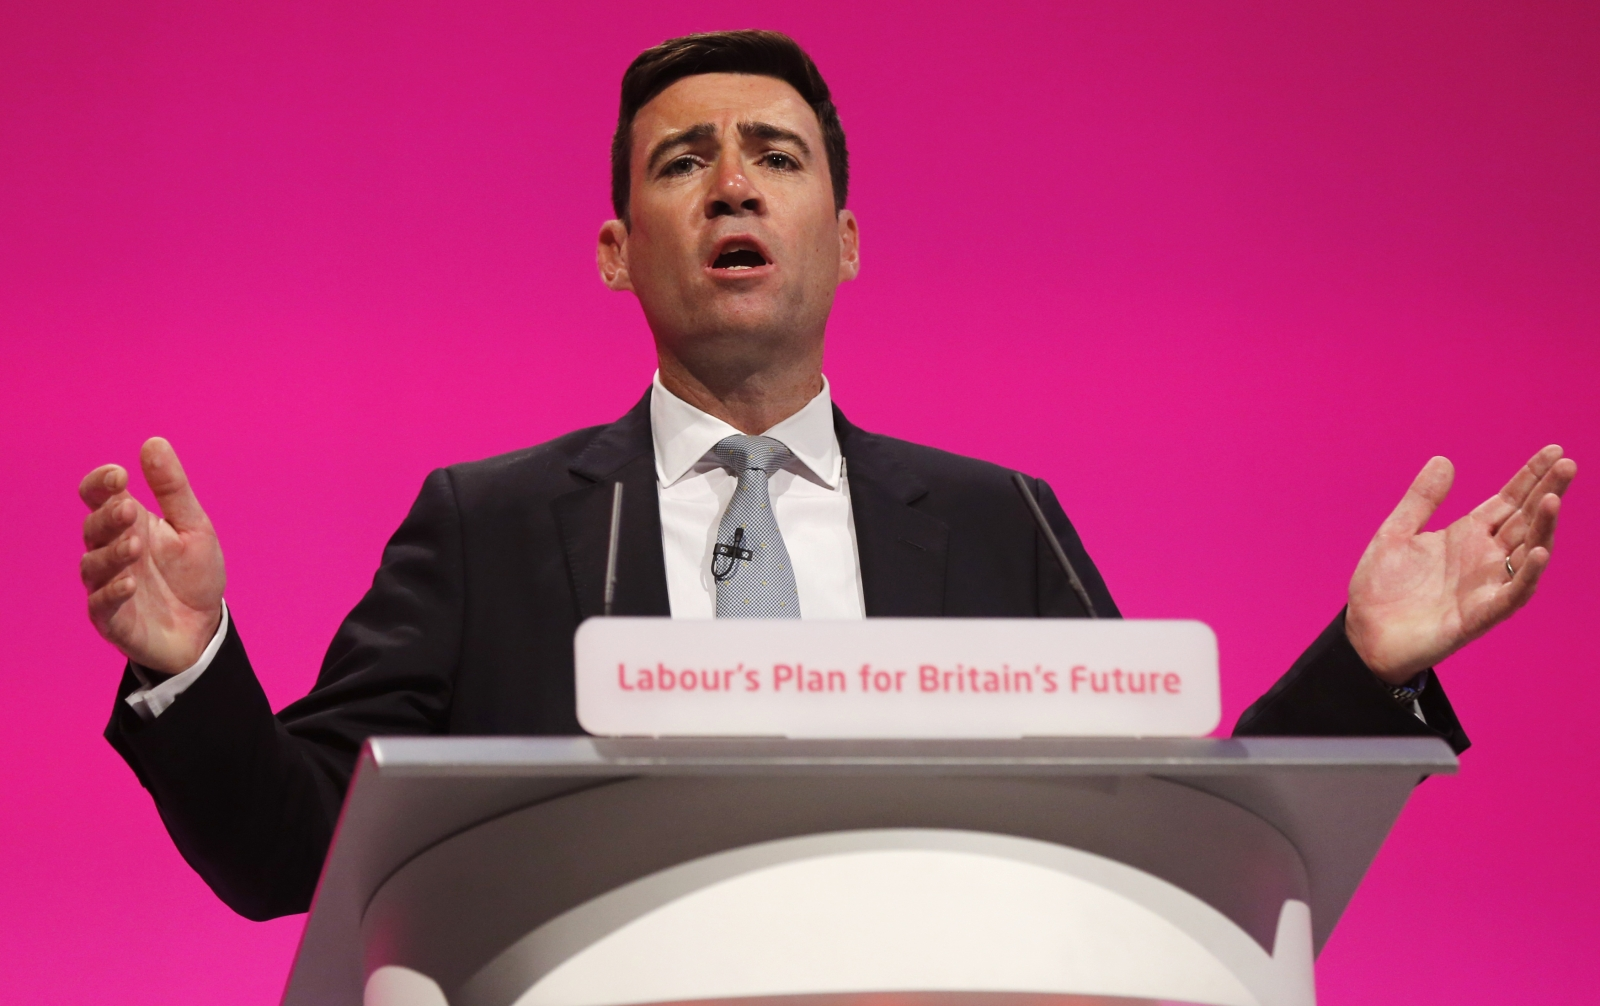 Andy Burnham faces criticism